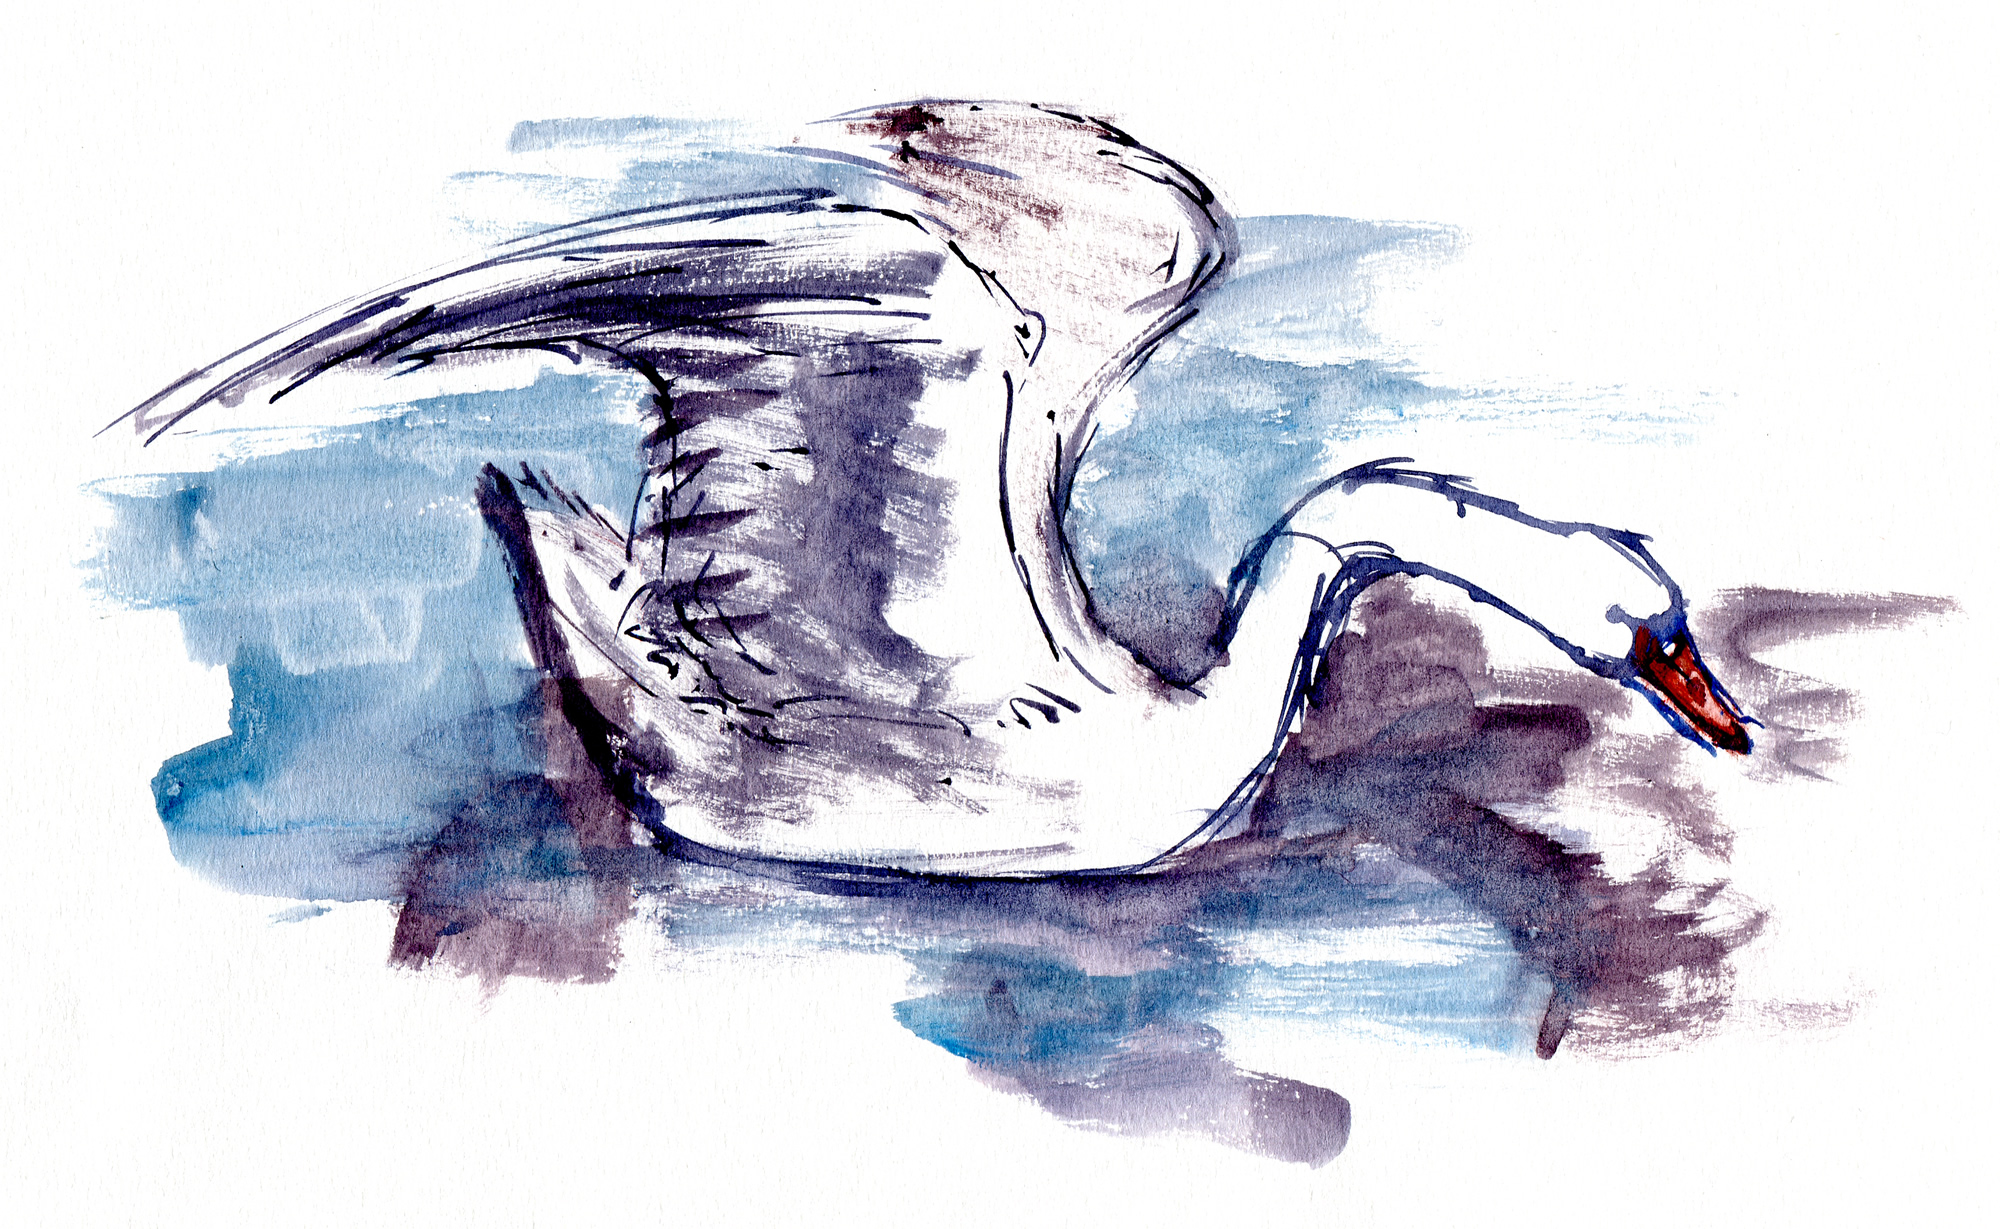 Swan watercolor sketches | The Hiking Artist project